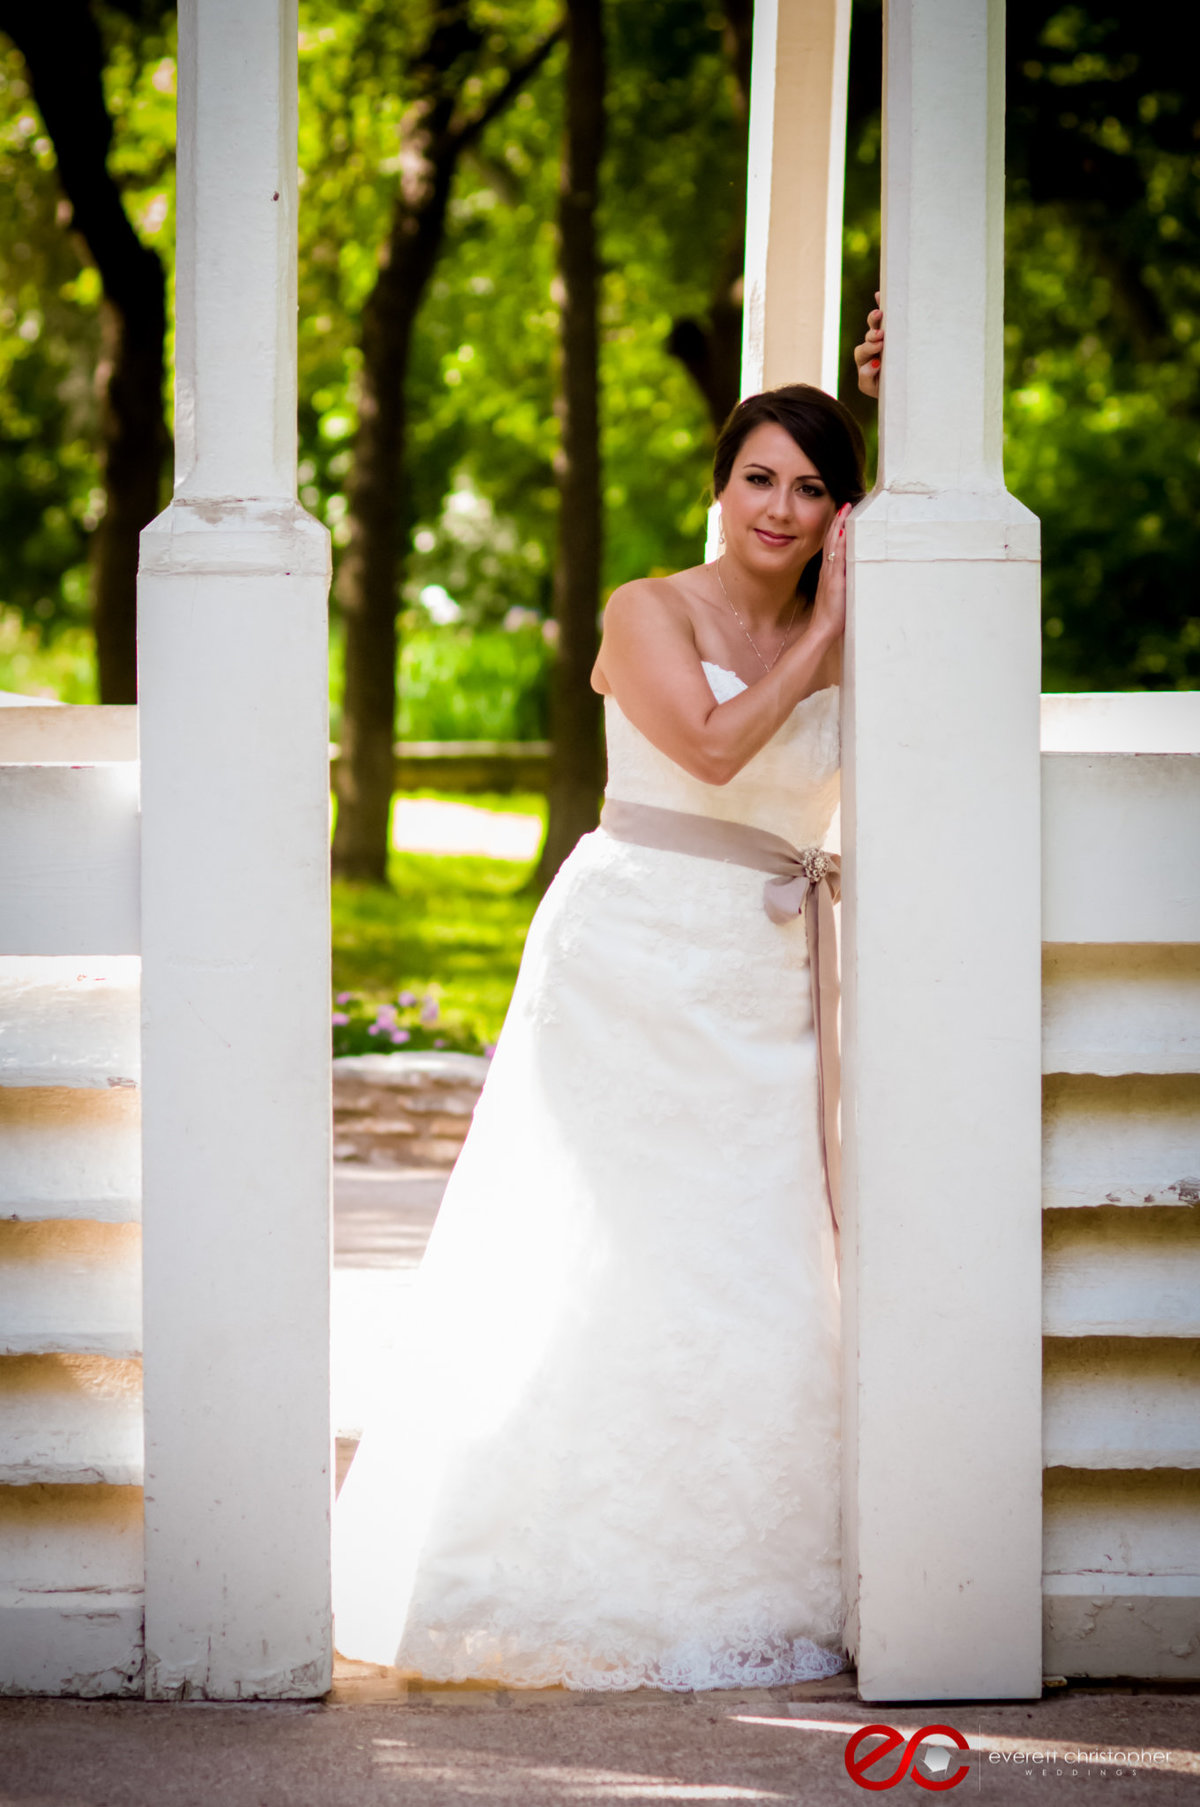 042714andrea_bridals_botanical0017